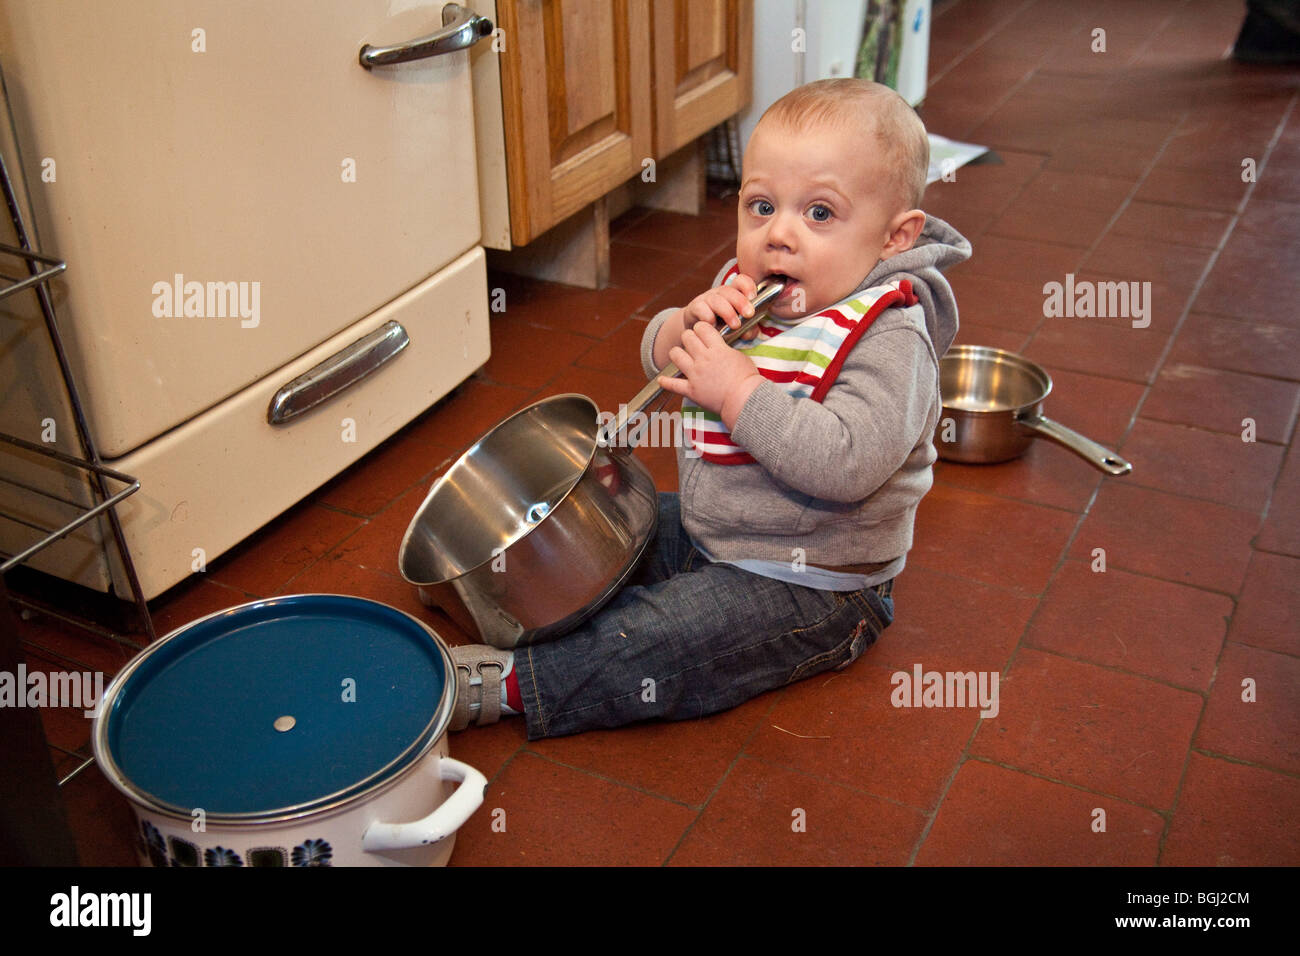 Baby Boy Eight Months Old Playing With Pots And Pans On